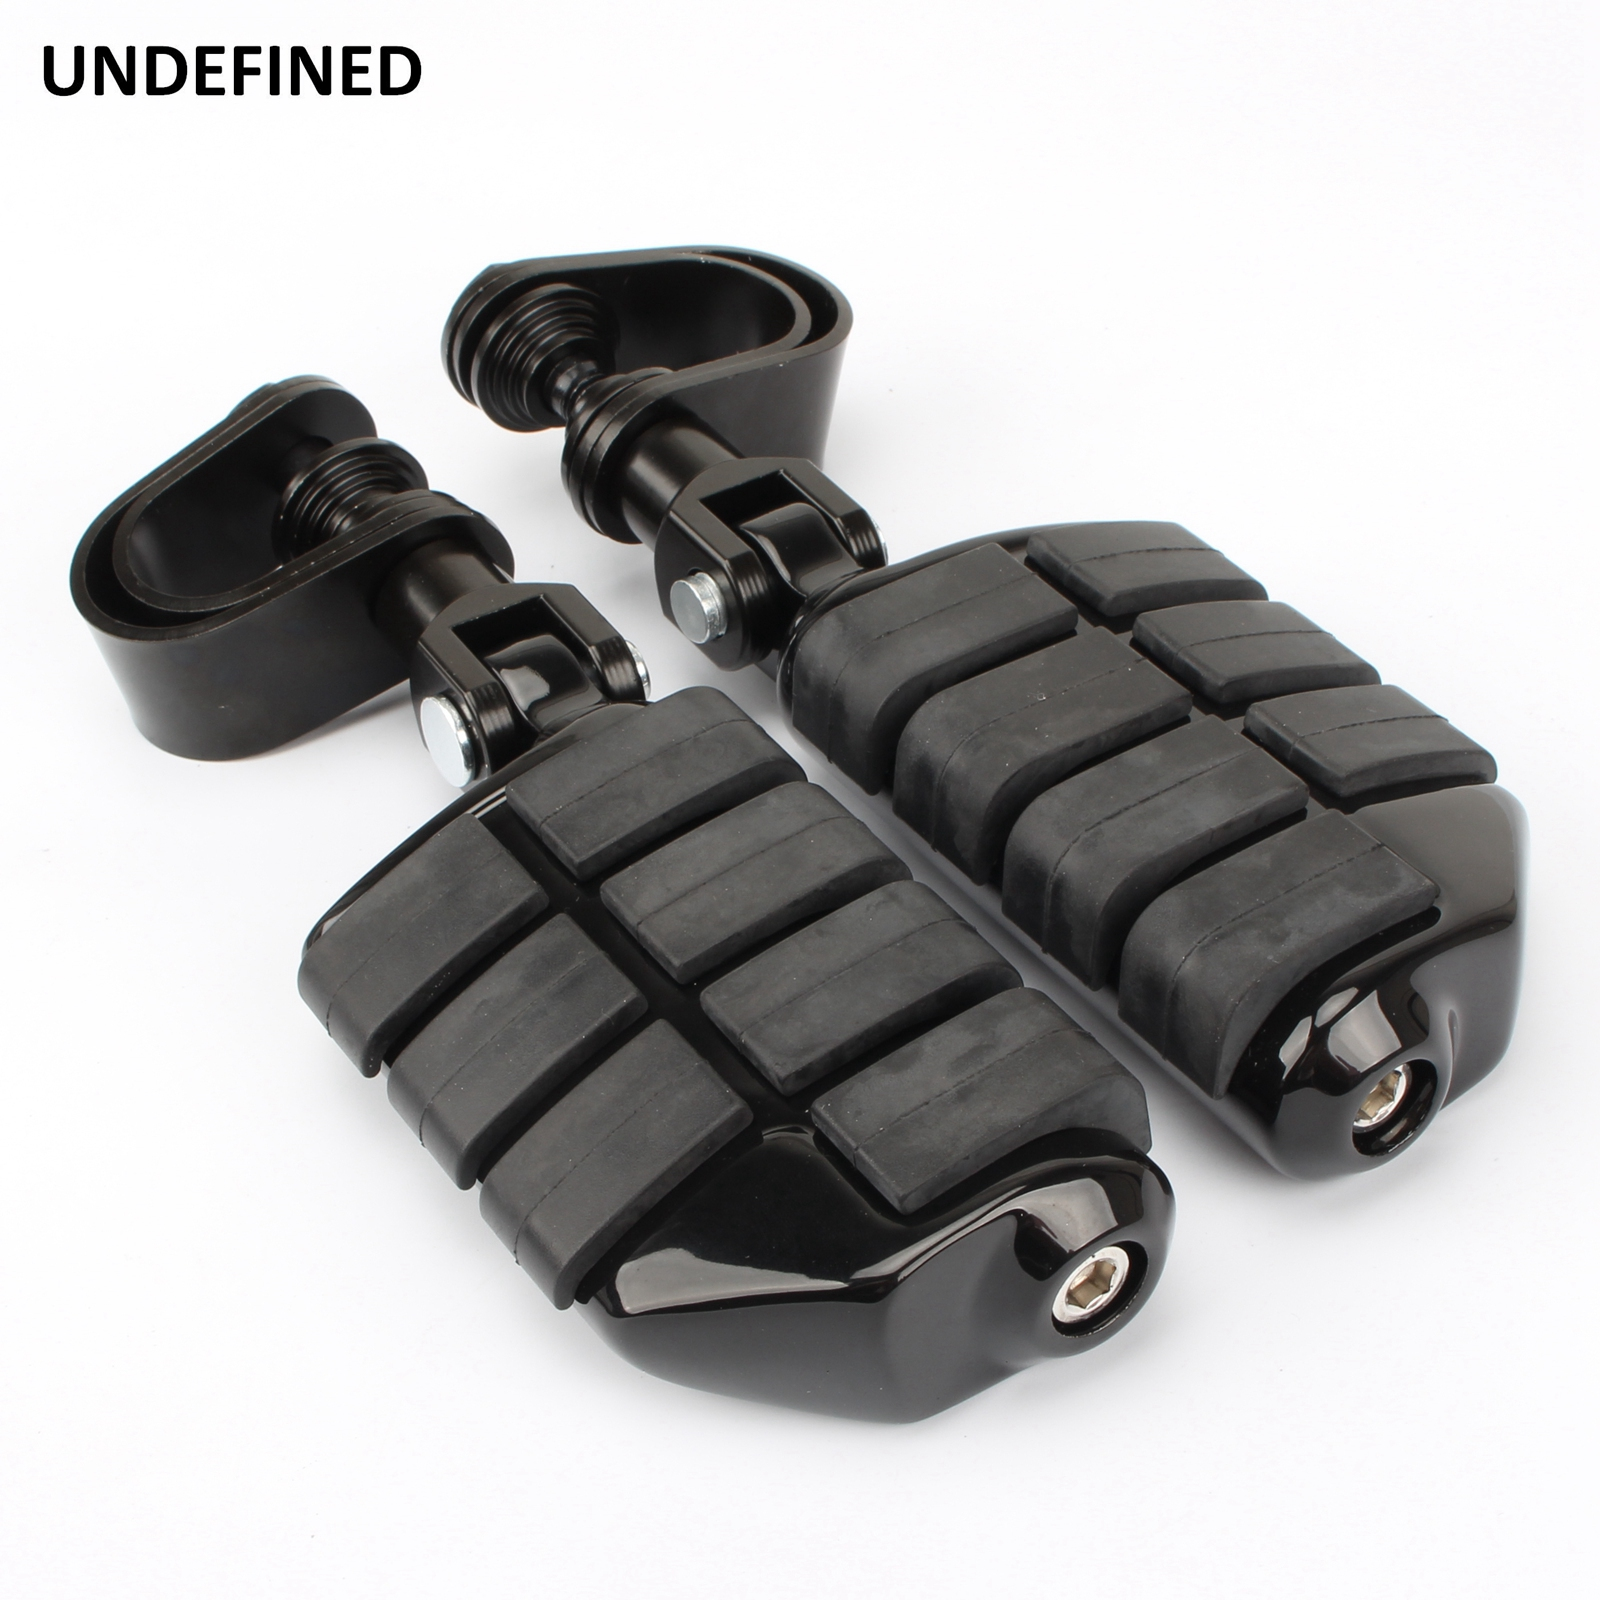 """Motorcycle Highway Pegs for Harley Electra Glide Road King Street Glide 1.25"""" Engine Guard Foot Peg Footrest Mount Clamp Kit"""